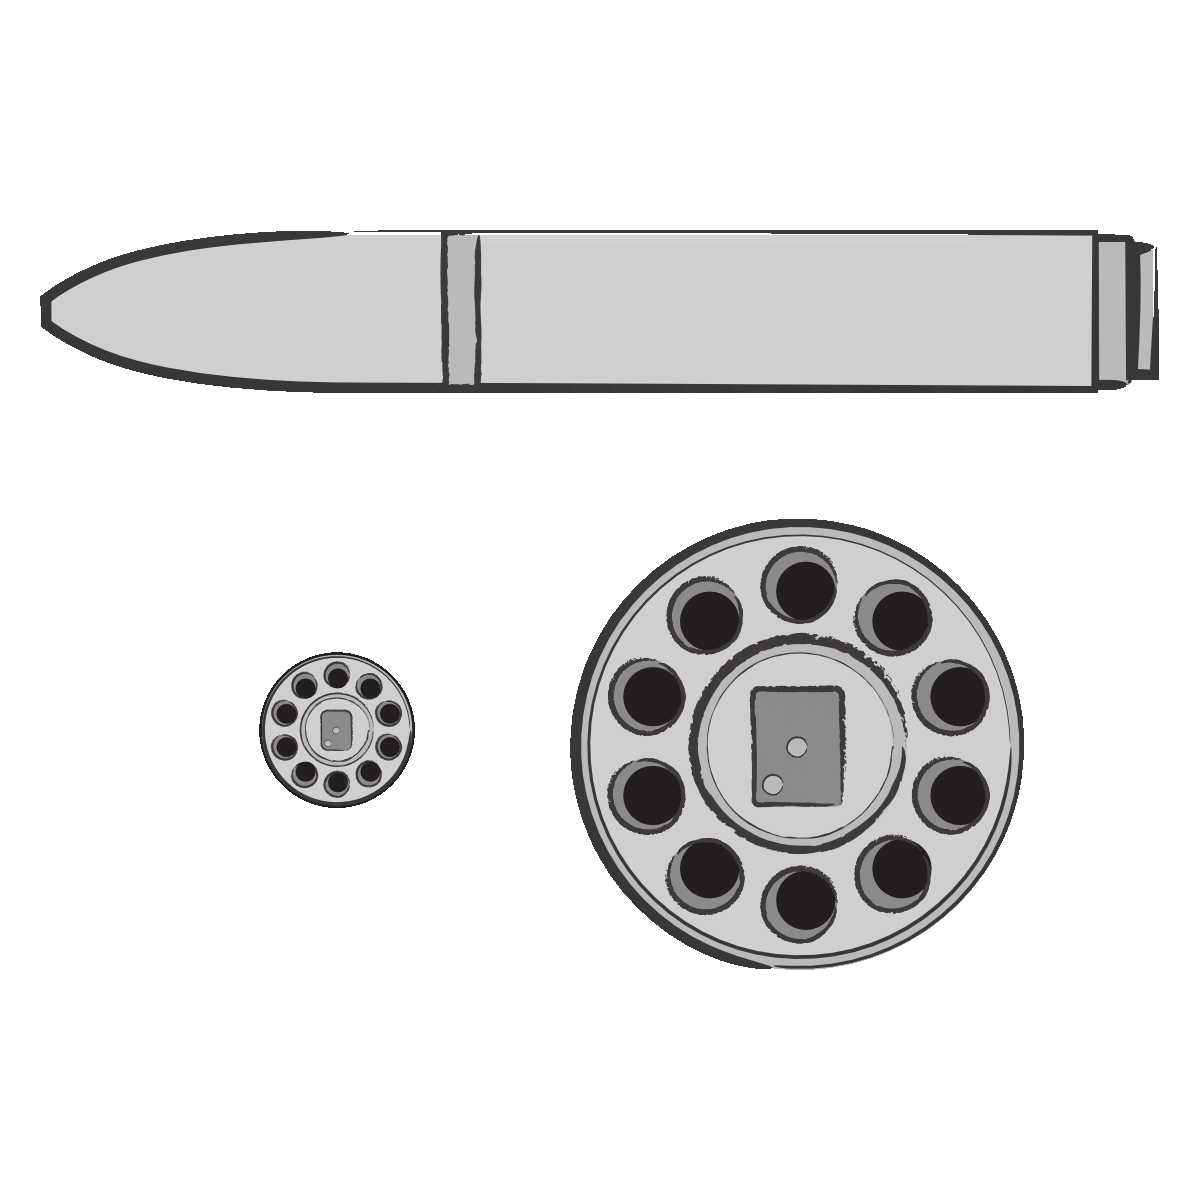 Image shows an illustration that includes the body of an M-14-S artillery rocket and a close-up of the rocket's circular base with ten exhaust nozzles ordered in a circle around a round plate. Next to the illustration of the base is an enlarged version of the same illustration. The M-14-S rocket is depicted in grey. The illustration was commissioned by GPPi and created by Judith Carnaby.